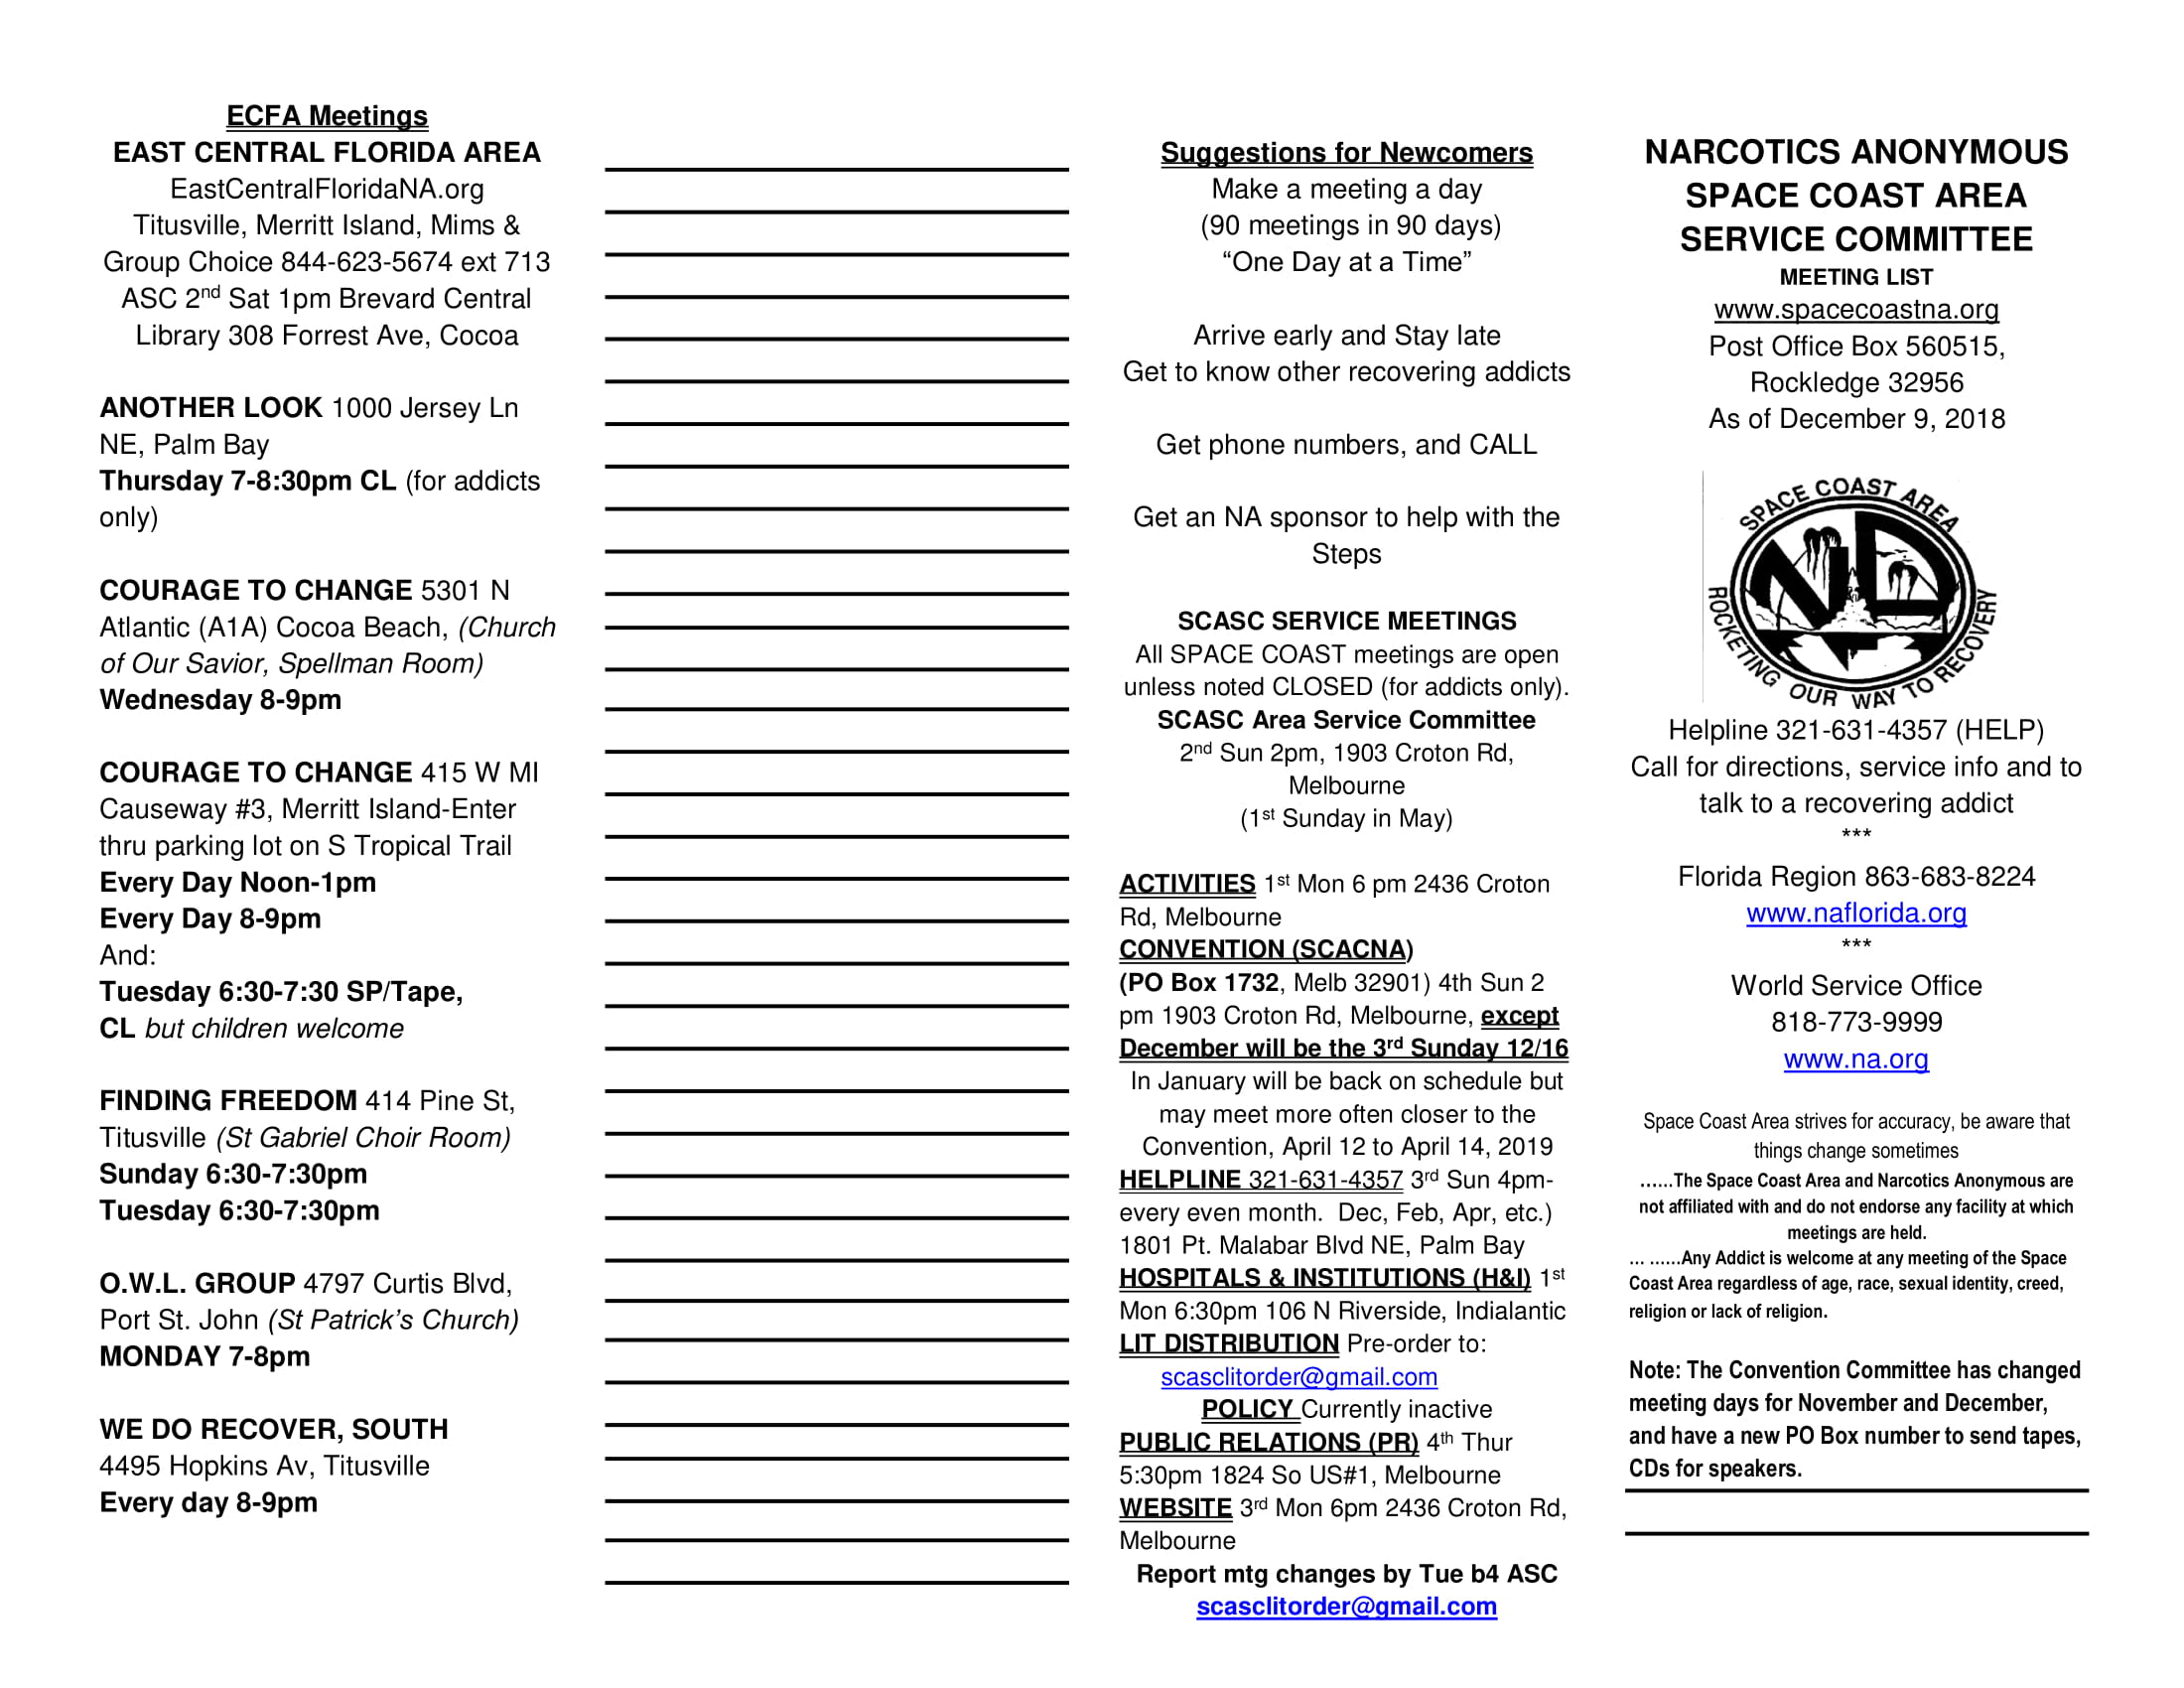 our meeting list   space coast area of narcotics anonymous